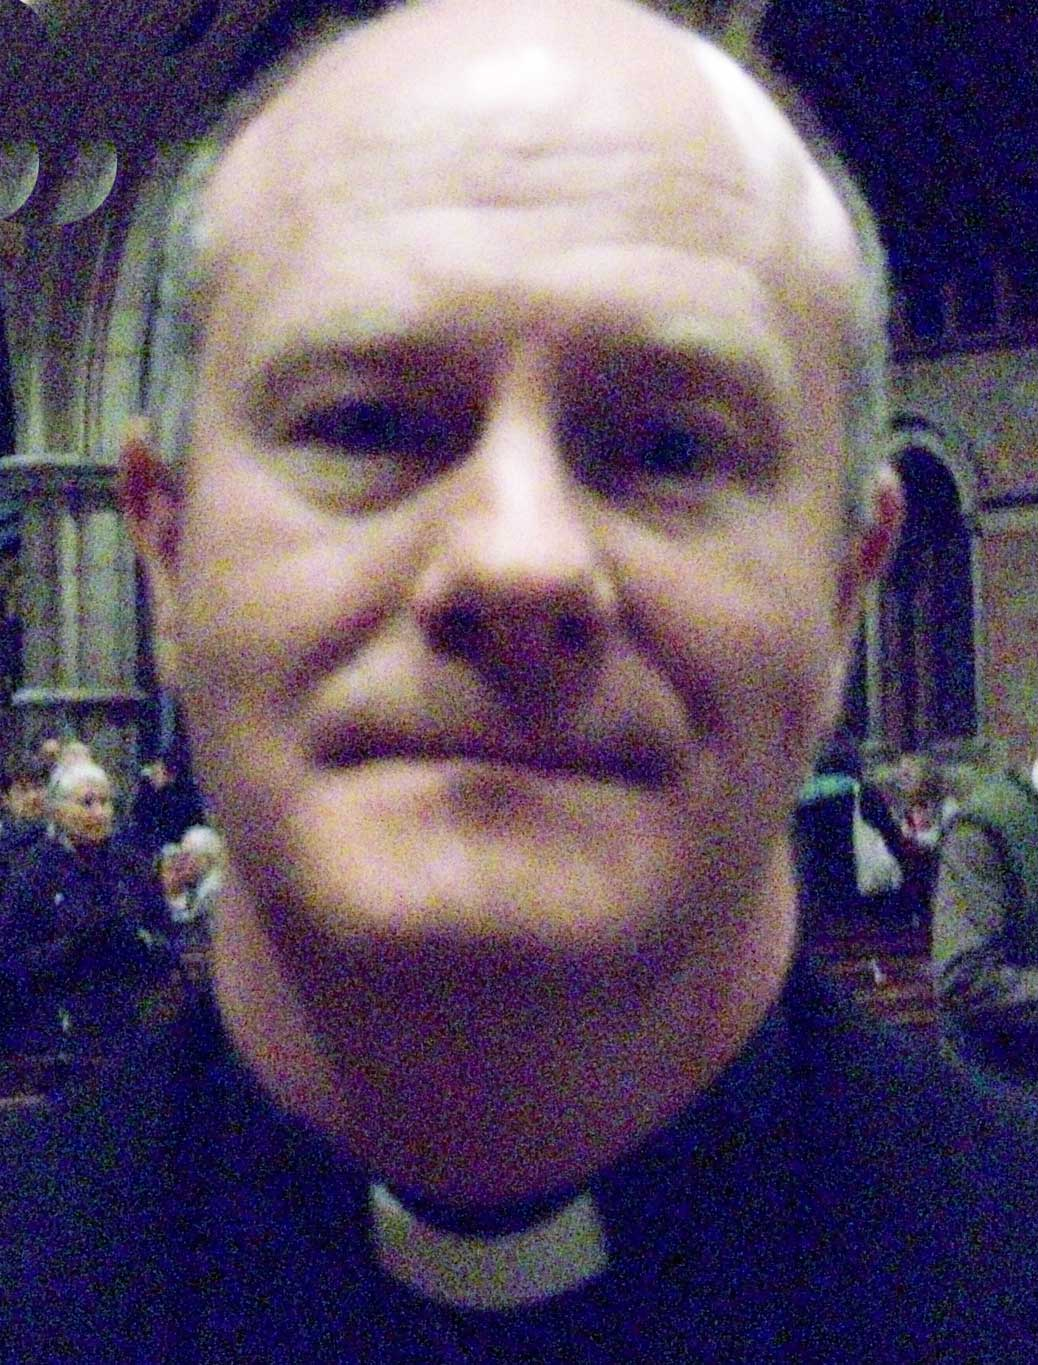 Fr John Diver, St. Lawrences Church, Sidcup